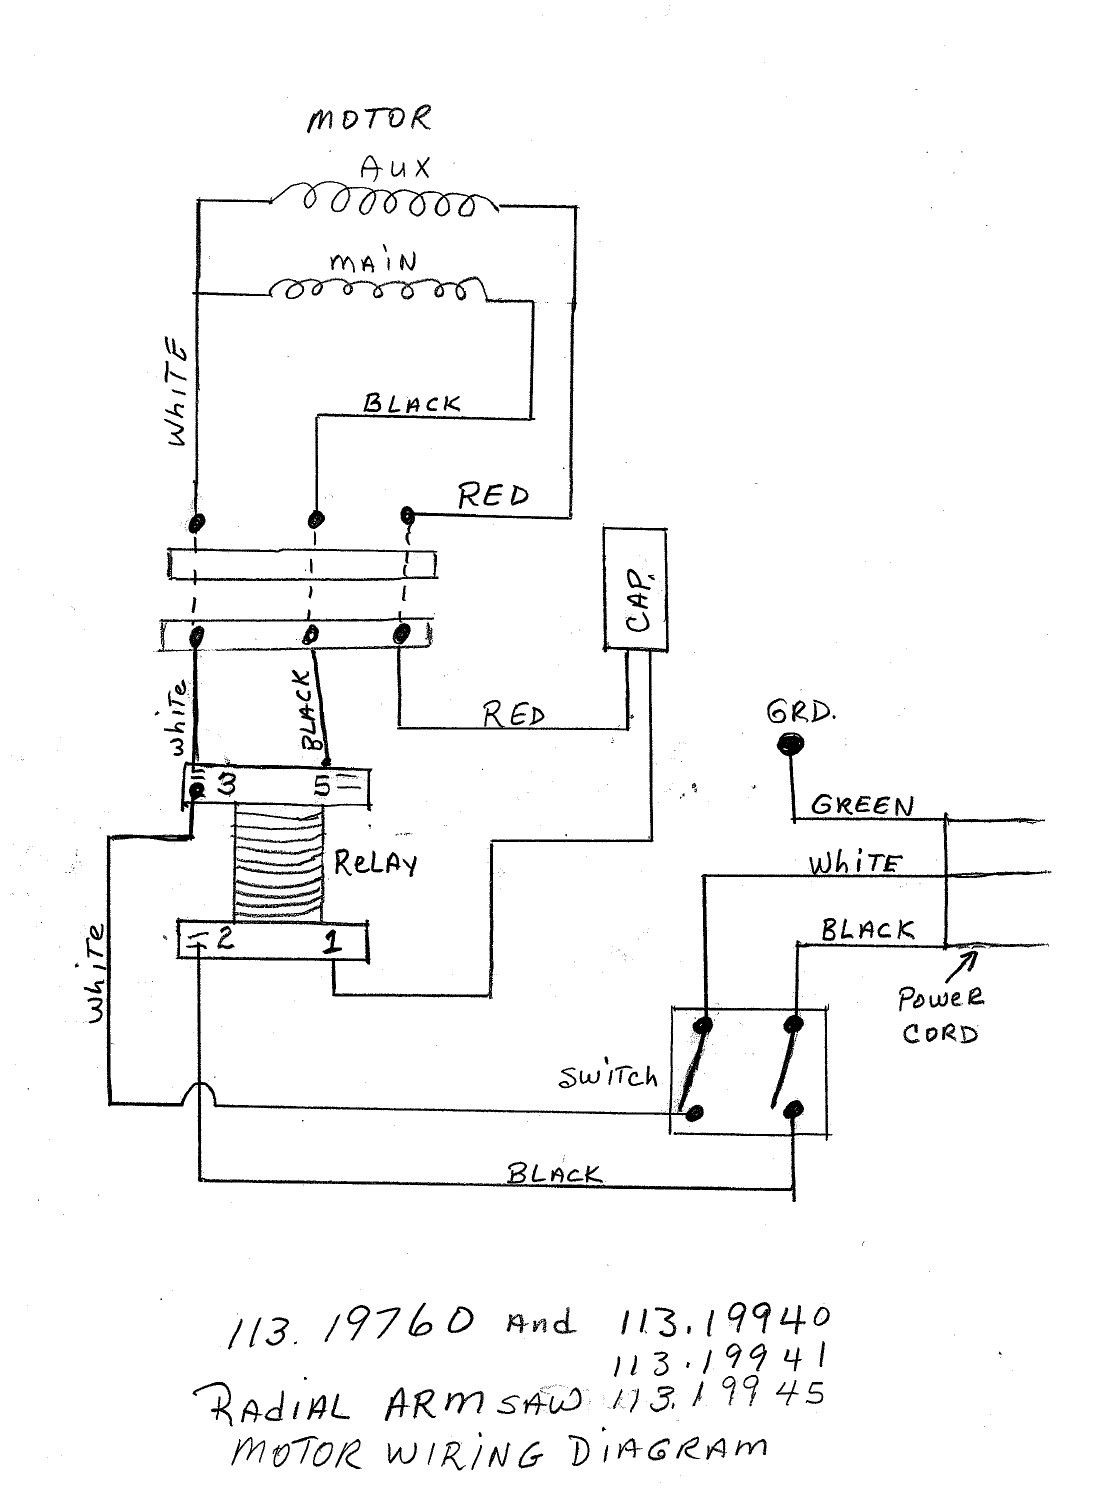 wiring diagram for toro blower wiring diagrams konsult wiring diagram for toro blower [ 1093 x 1509 Pixel ]